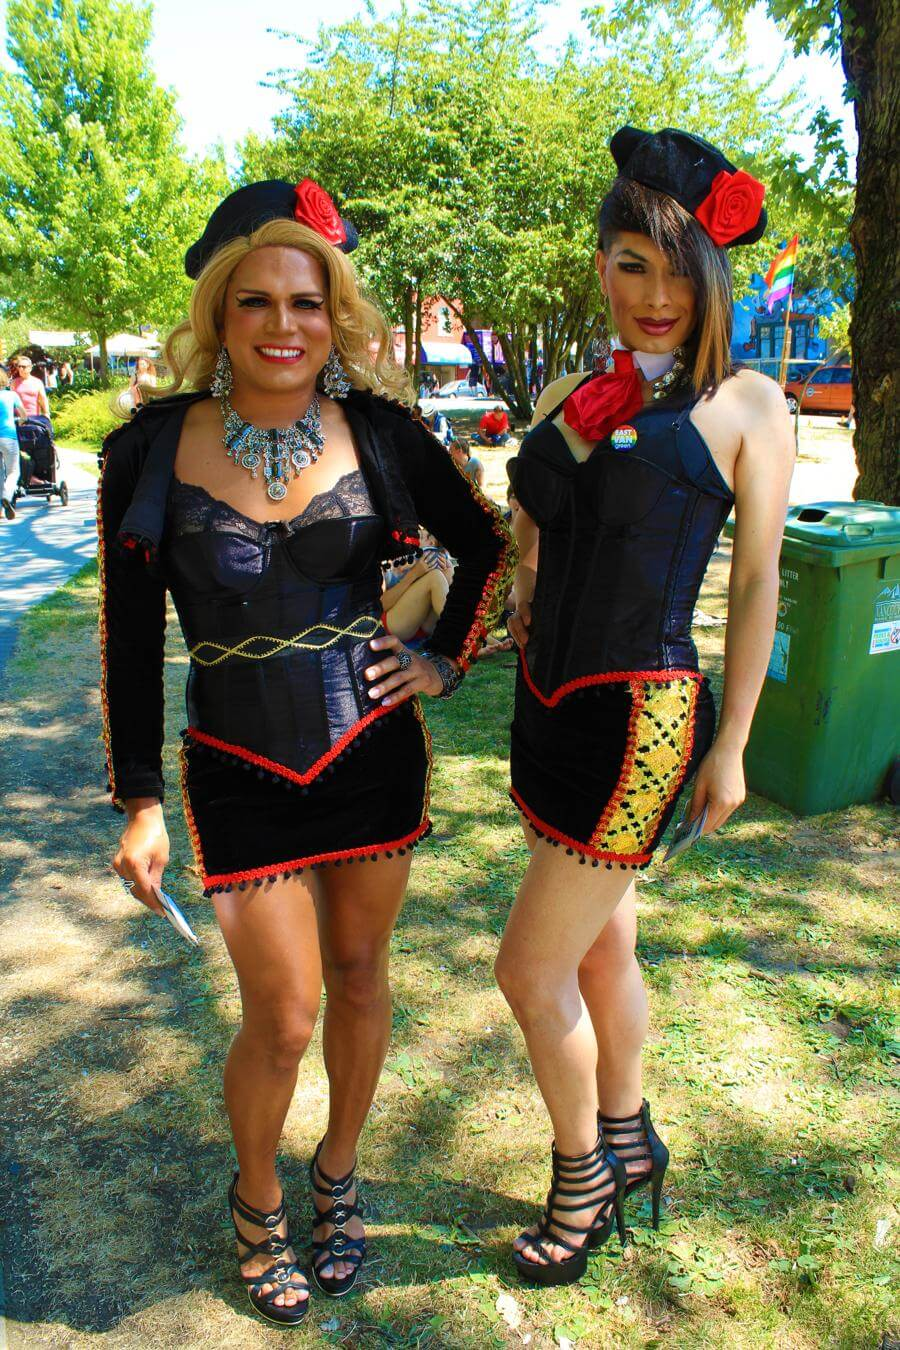 Vancouver East Side Pride 2015 (8)